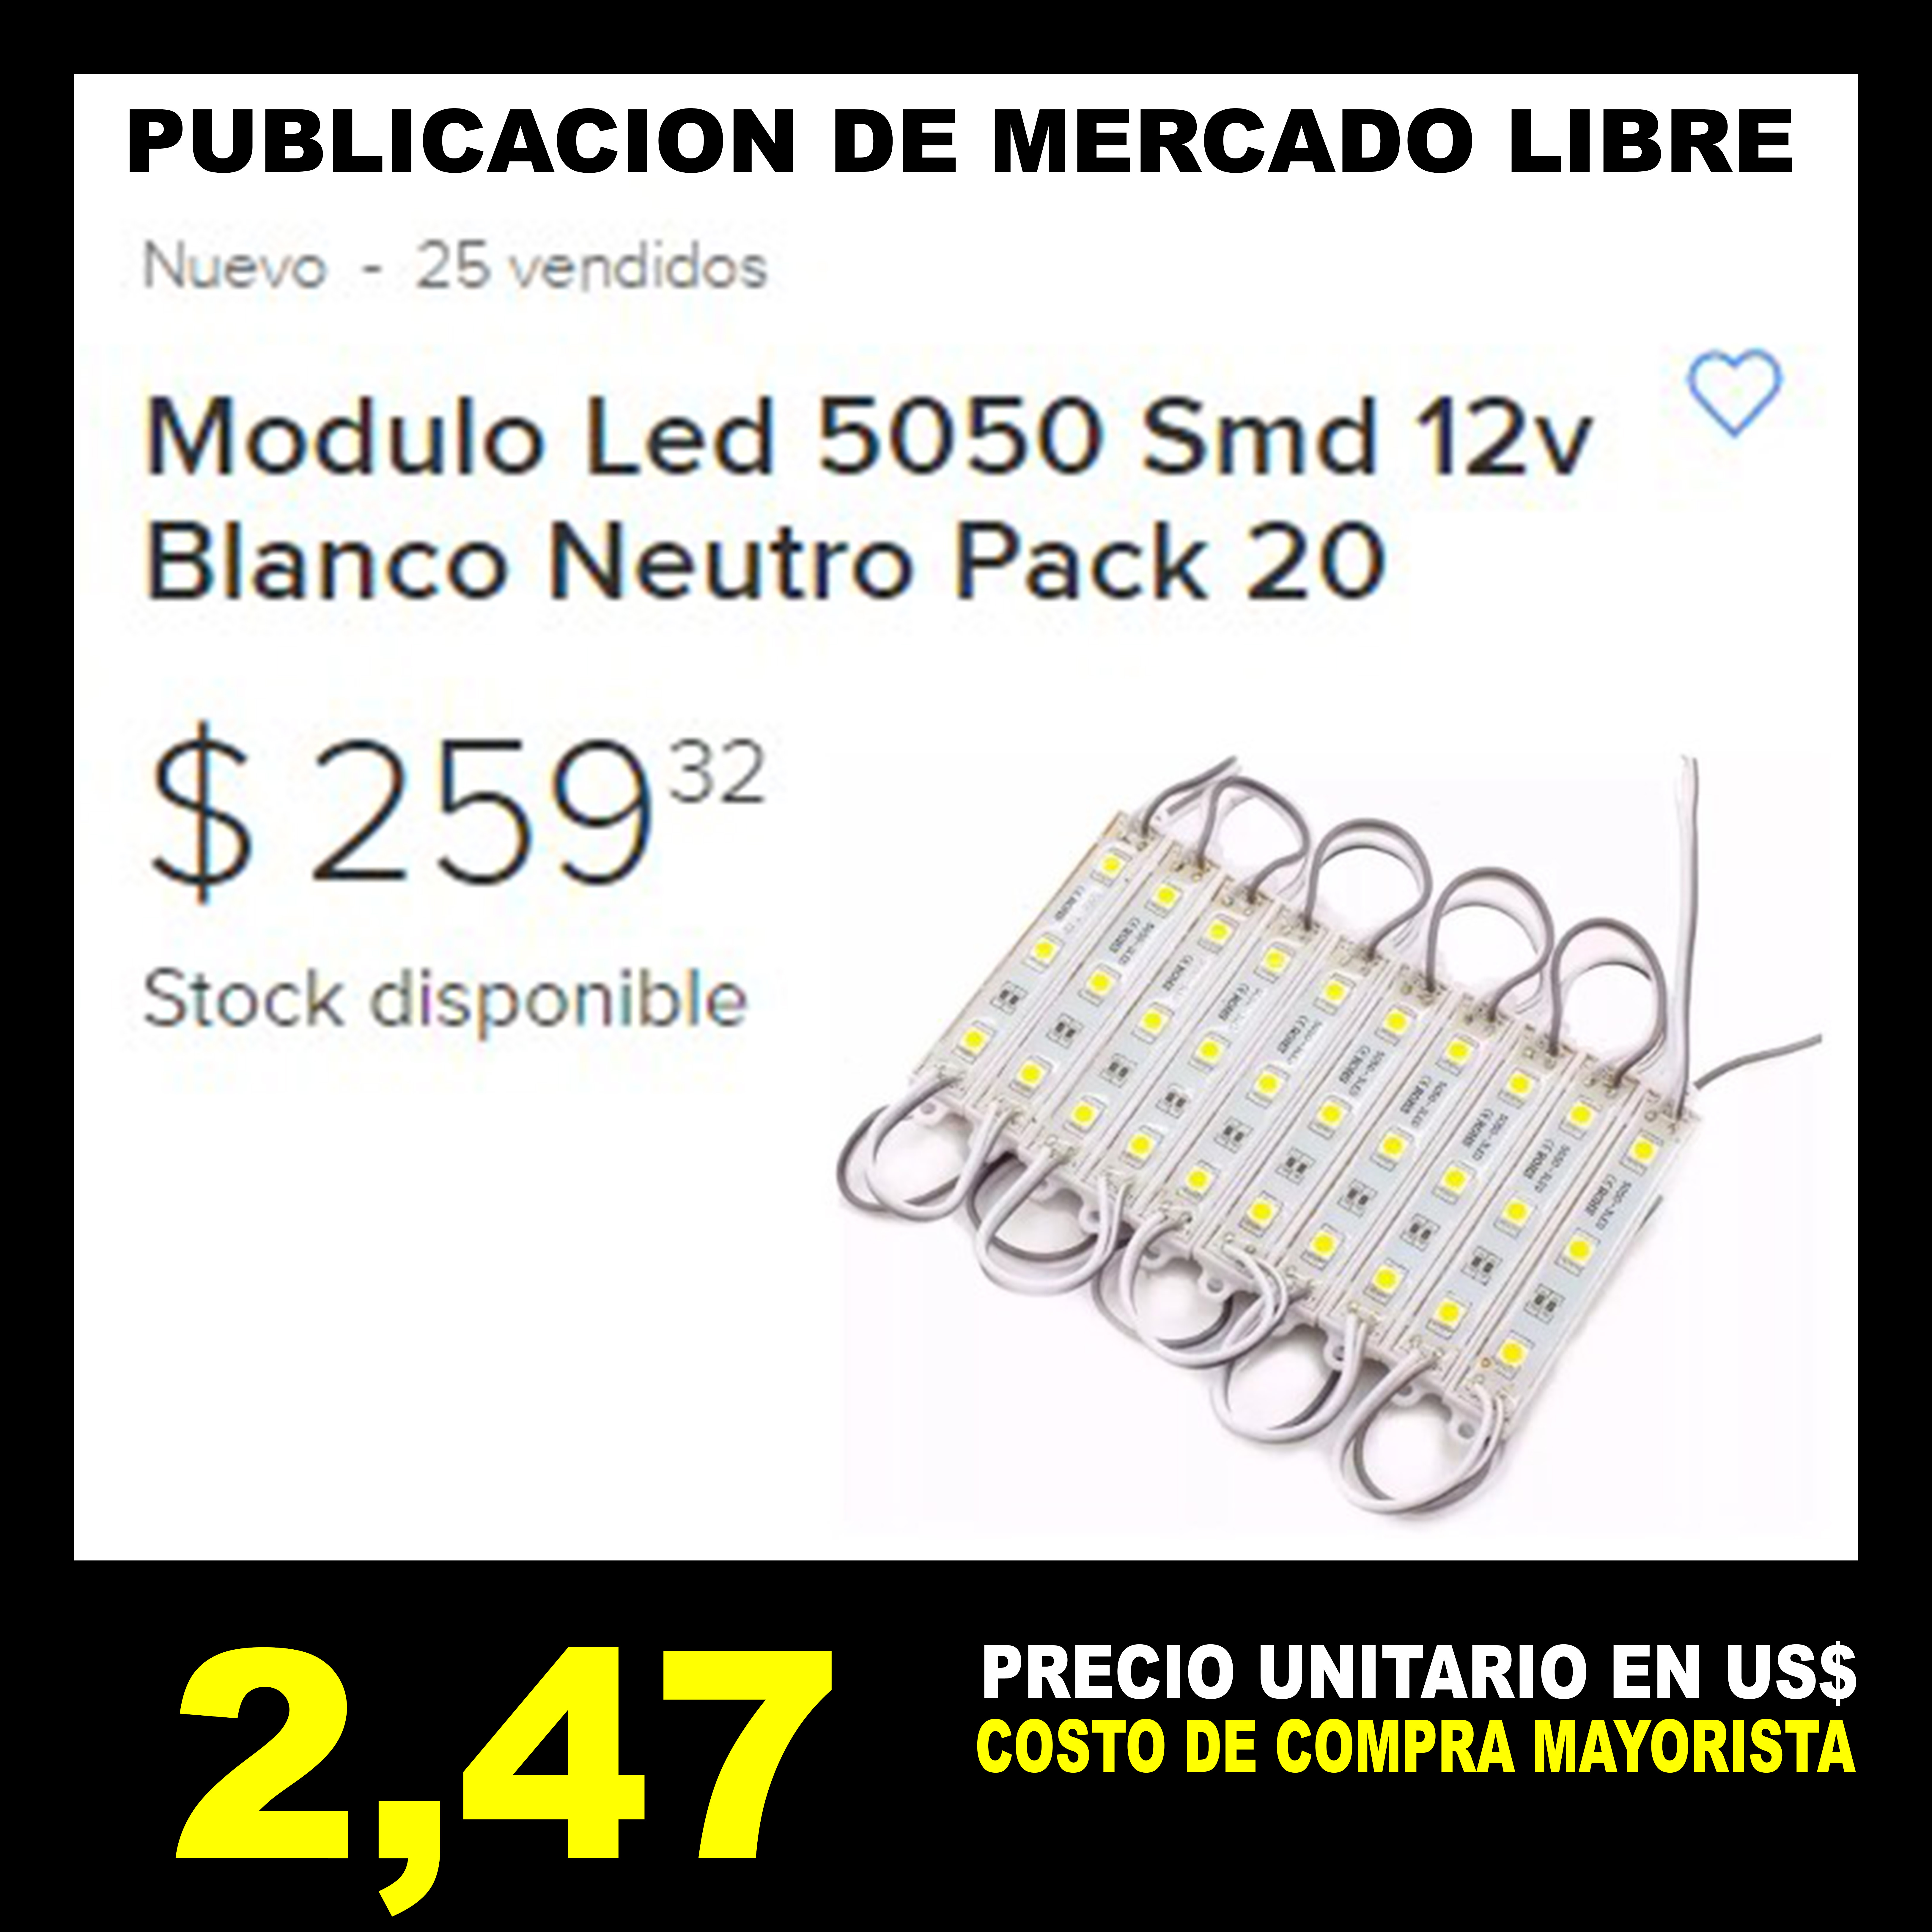 MLD Modulo Led 5050 Smd 12v Blanco Neutro Pack 20